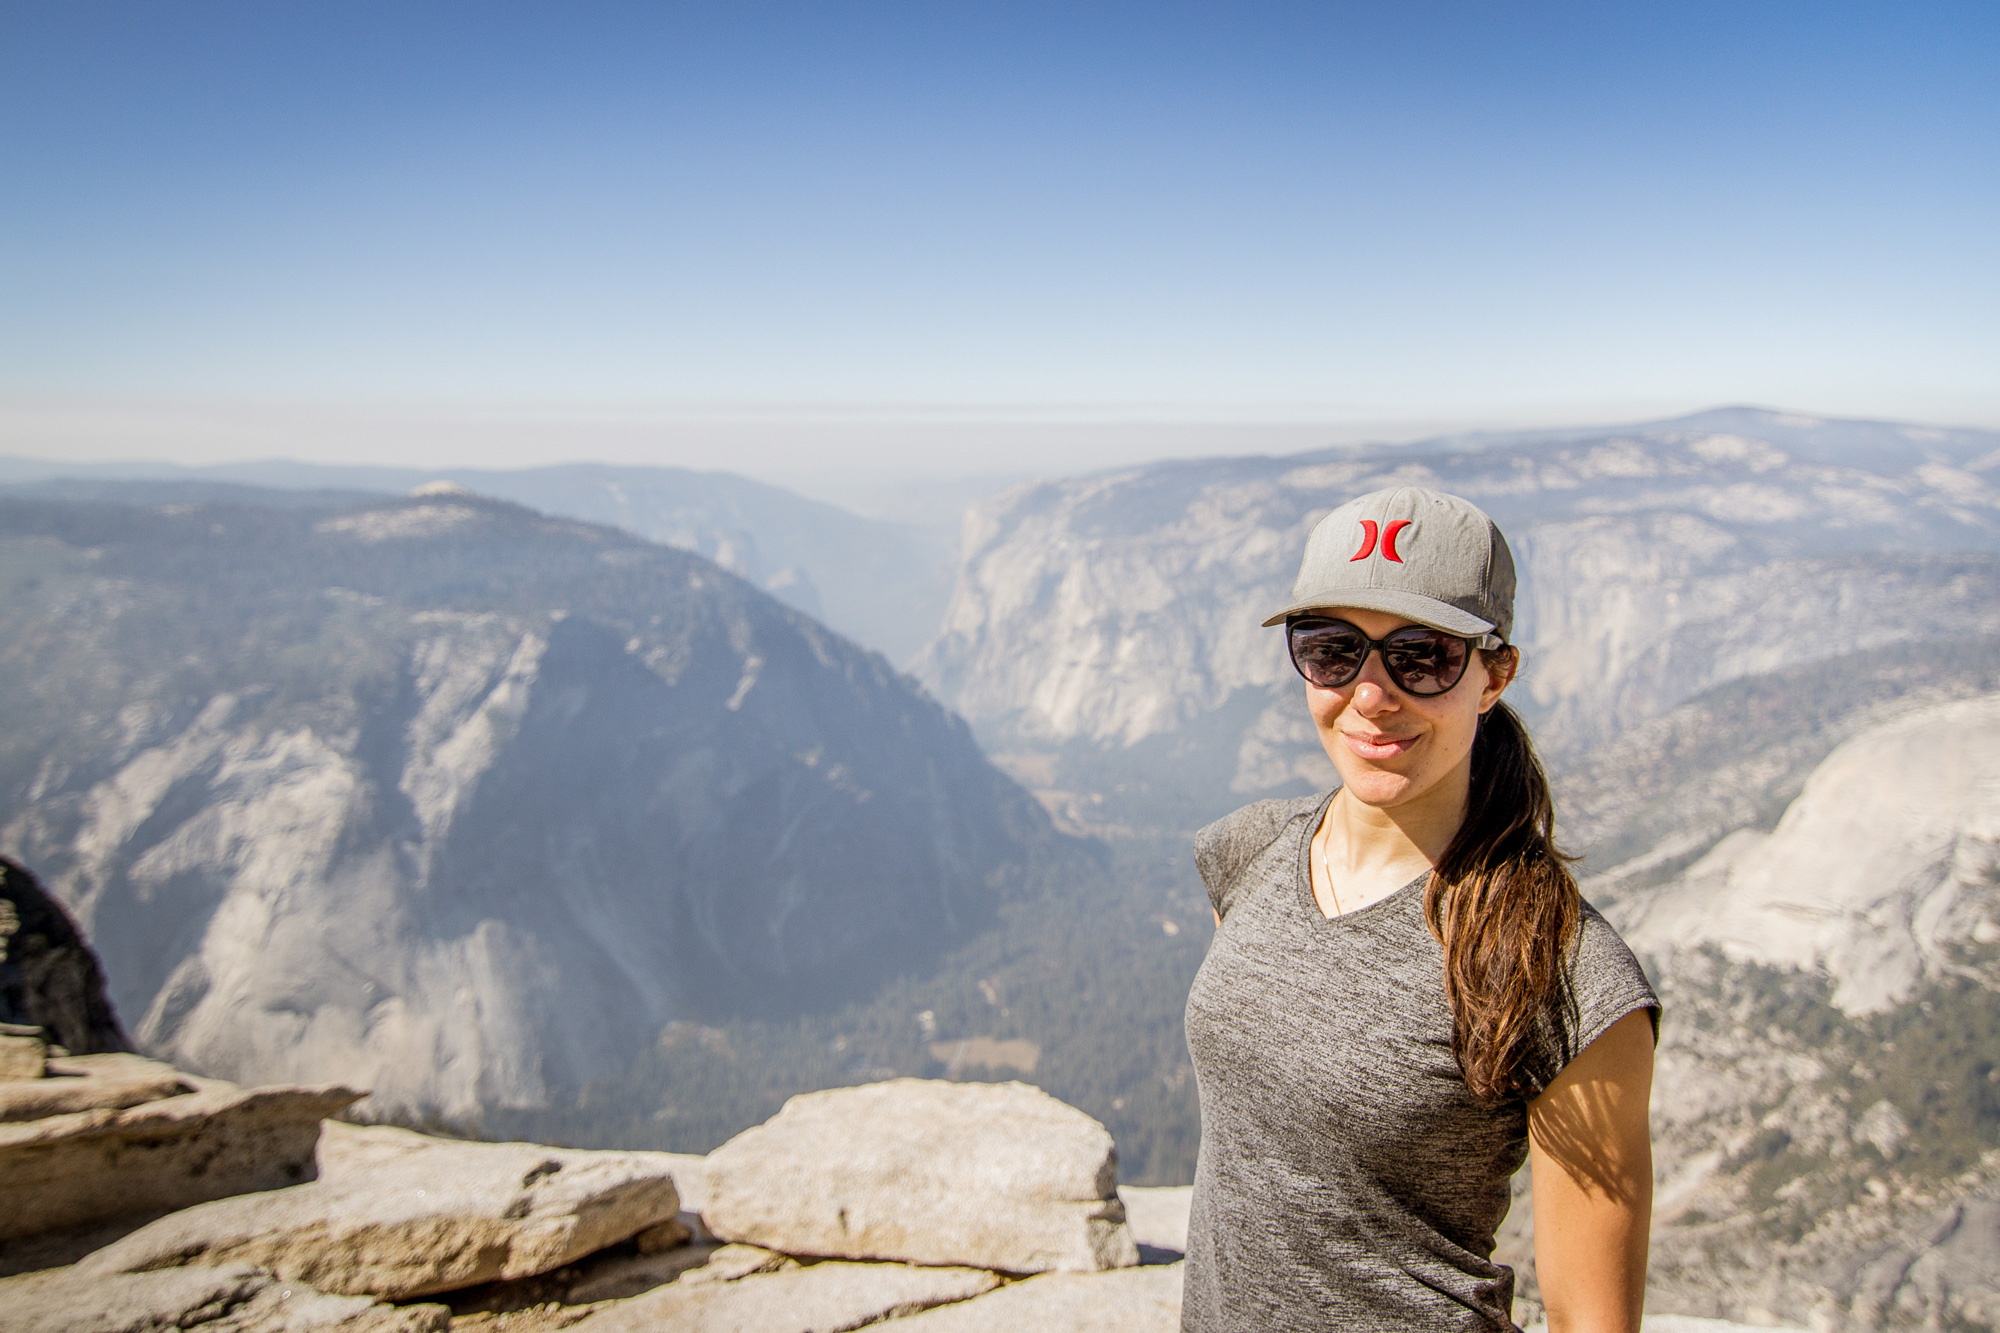 Amy at the Half Dome Summit, Yosemite National Park